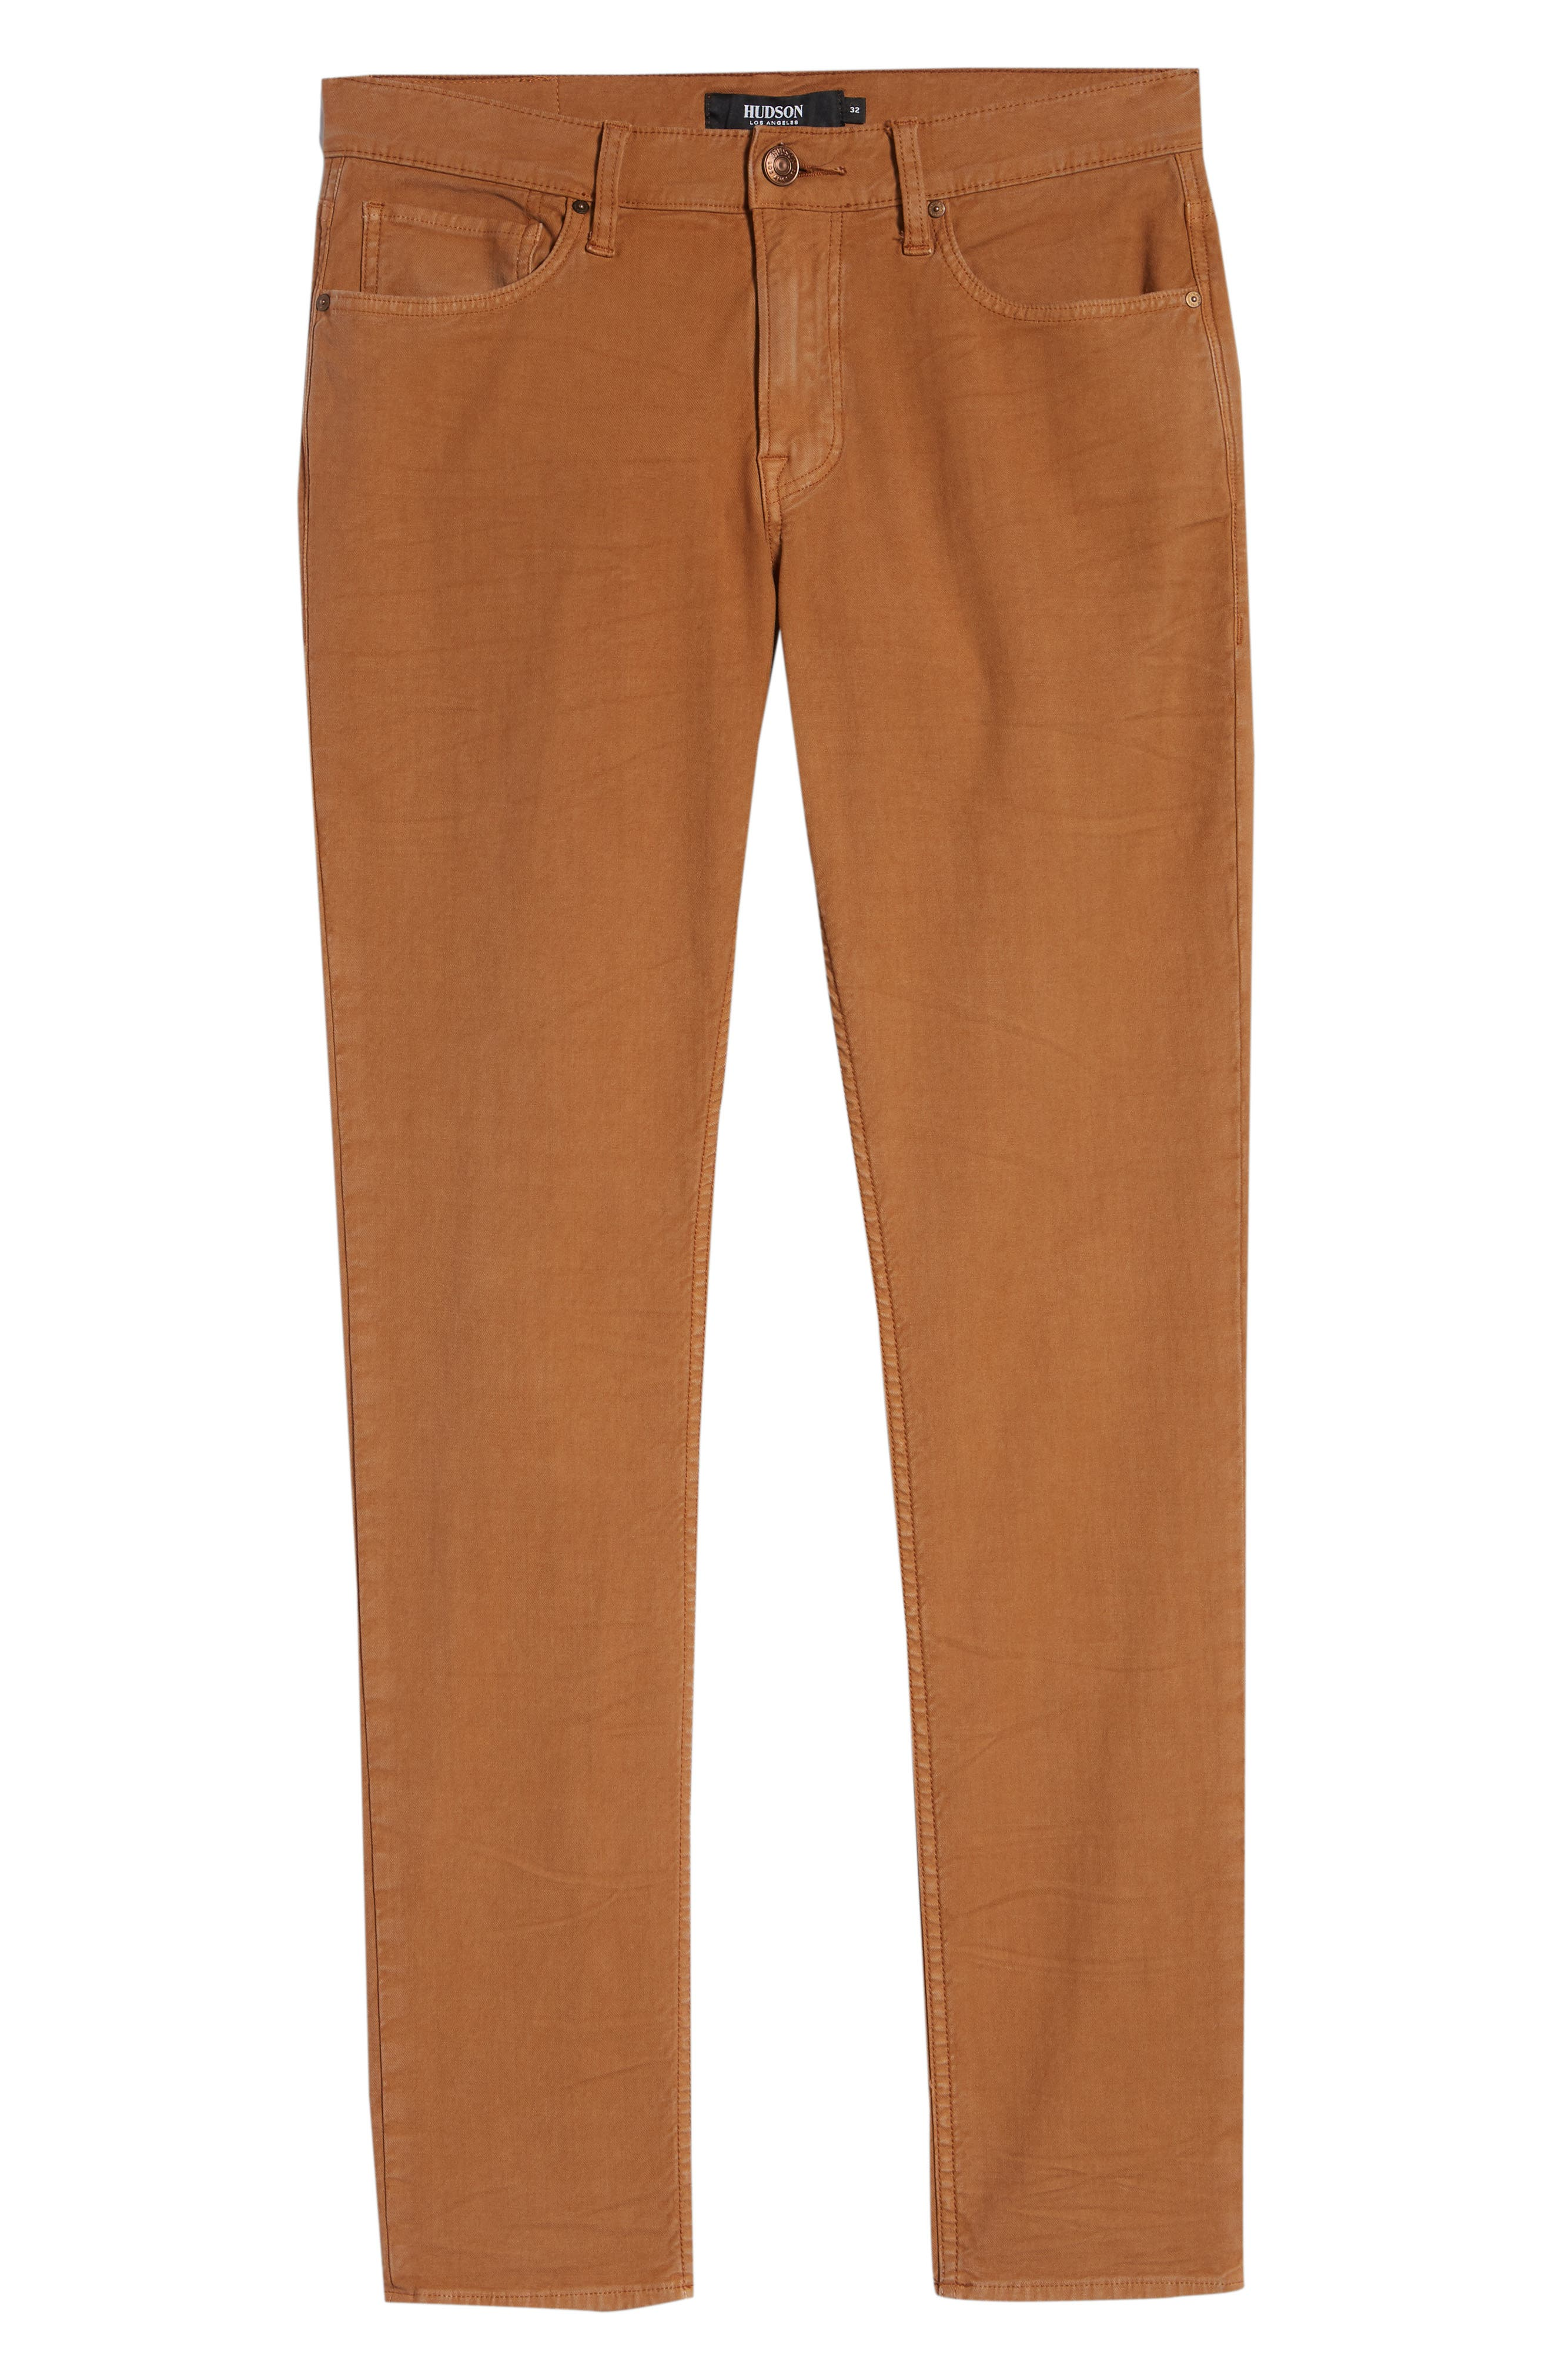 Axl Skinny Fit Jeans,                             Alternate thumbnail 6, color,                             SIENNA